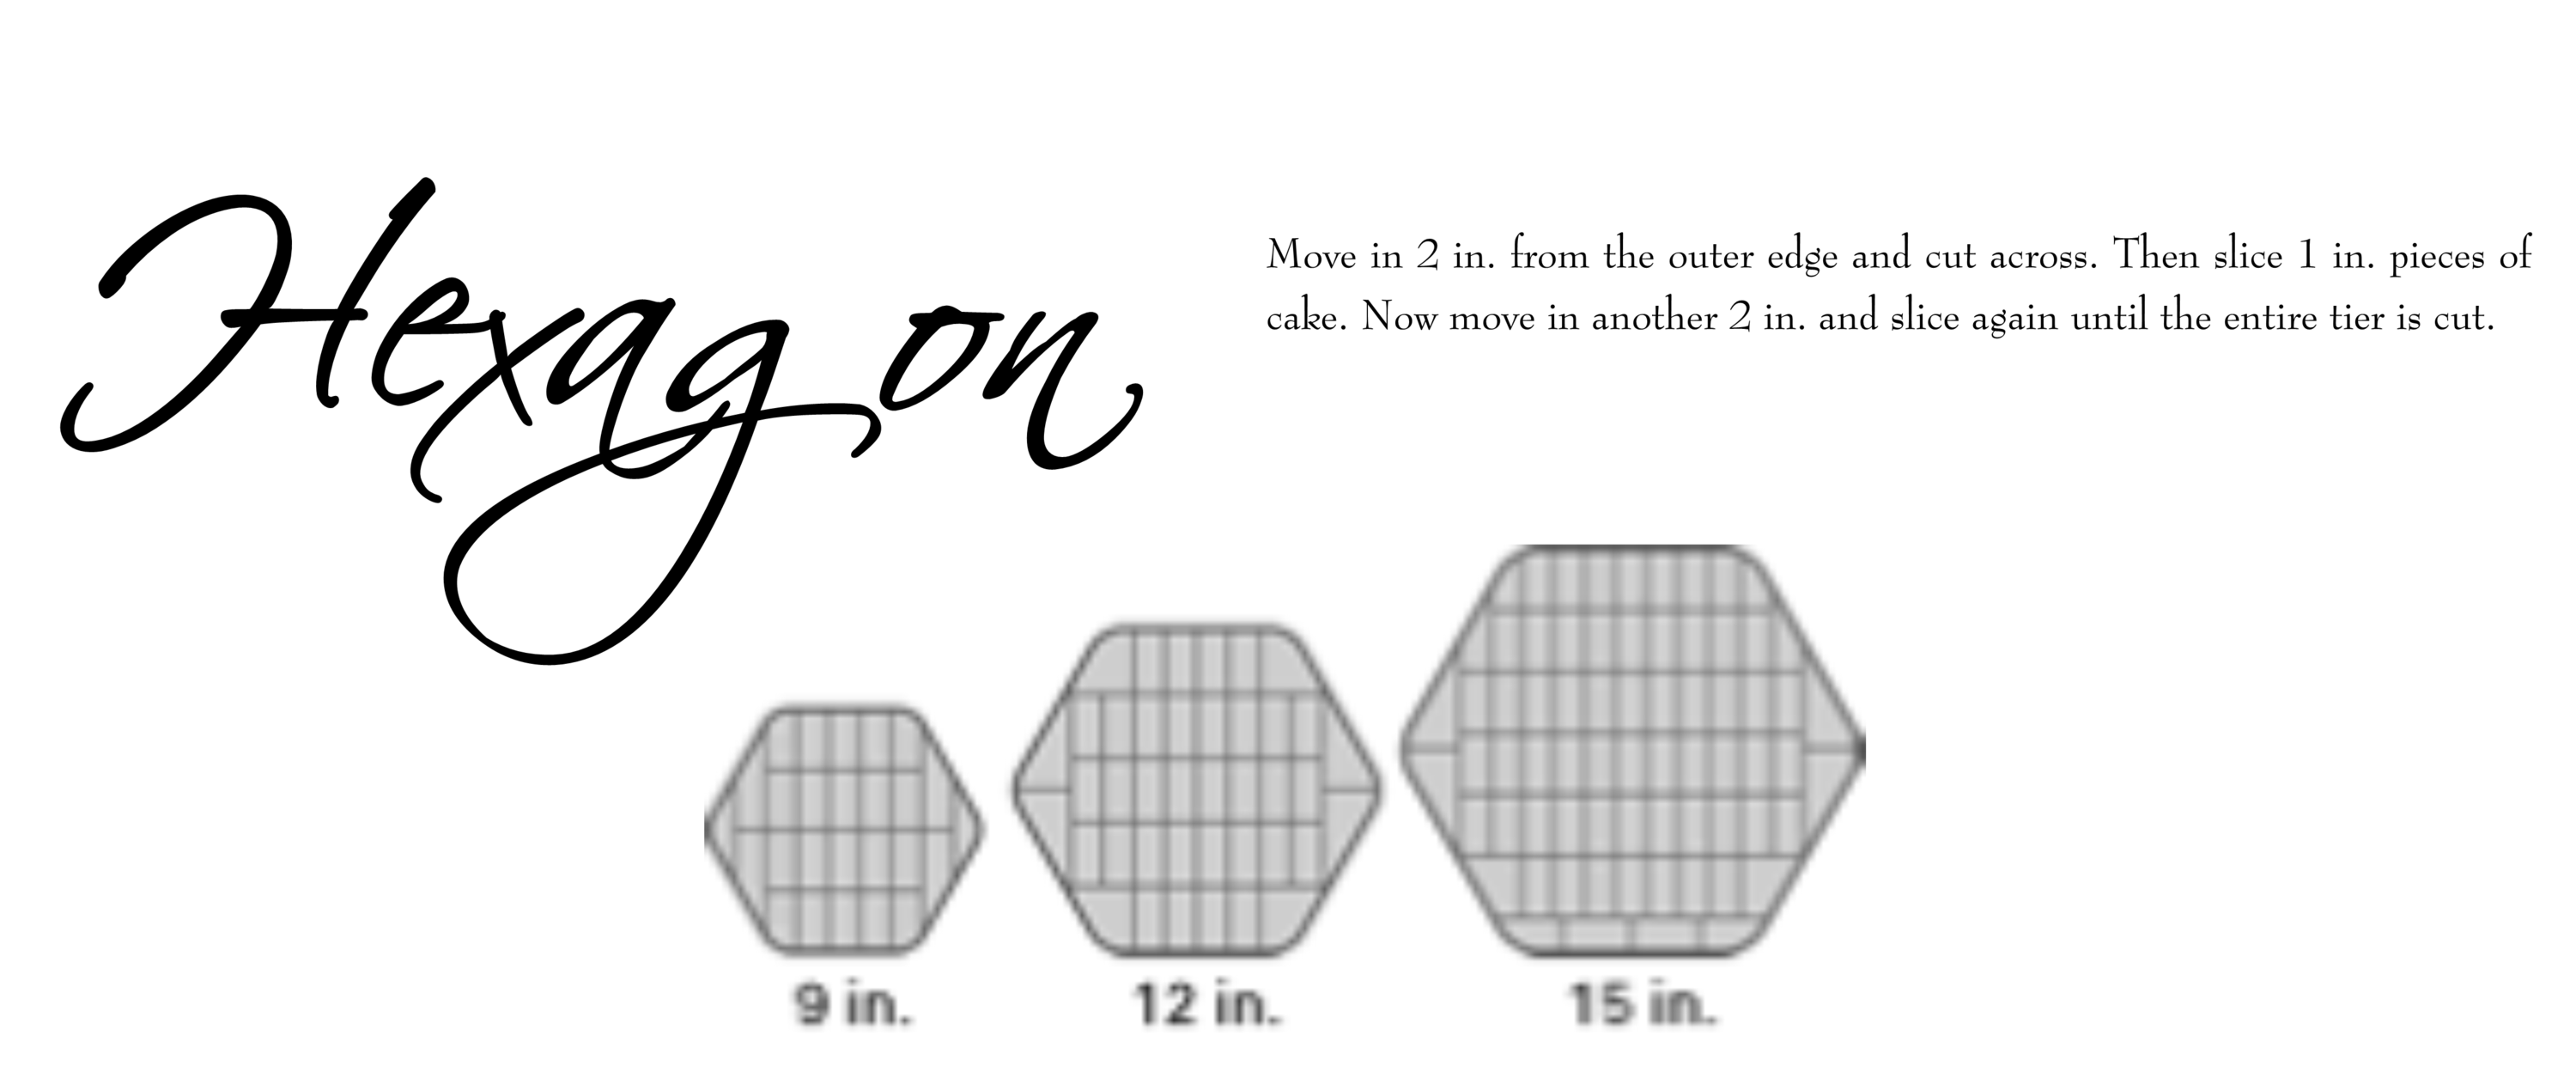 Hexagon tiered cake cutting guide